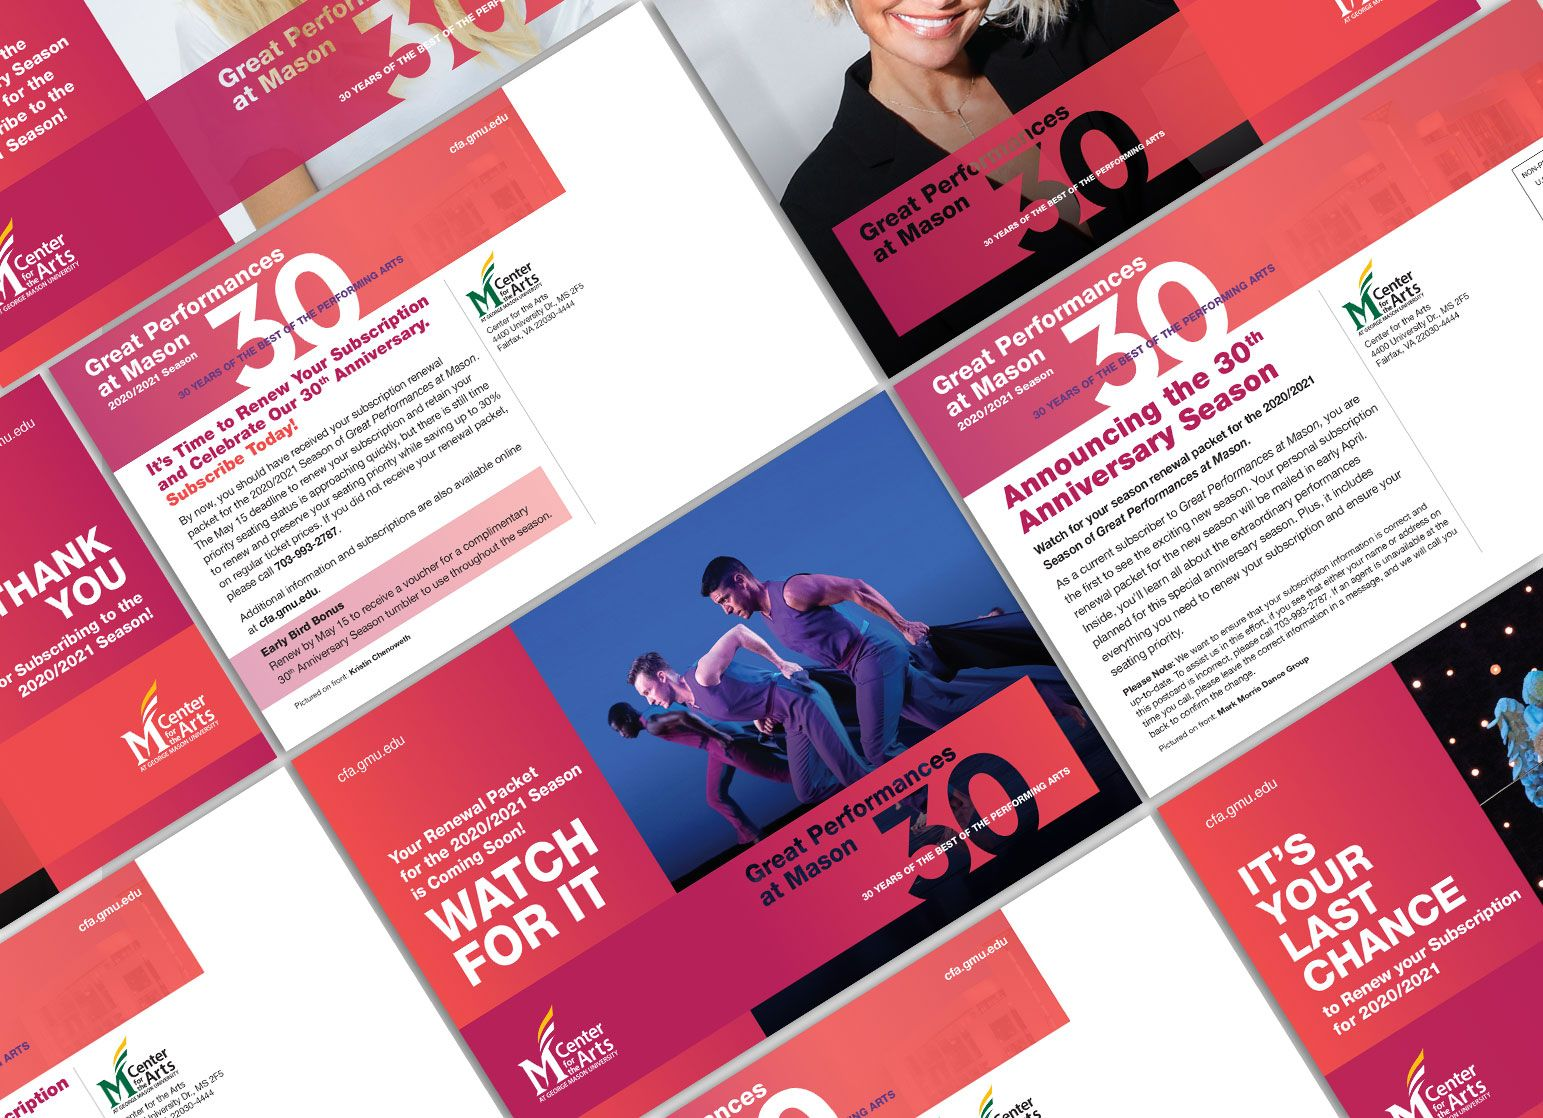 George Mason University - Center for the Arts - Design by New Leaf Graphic Design